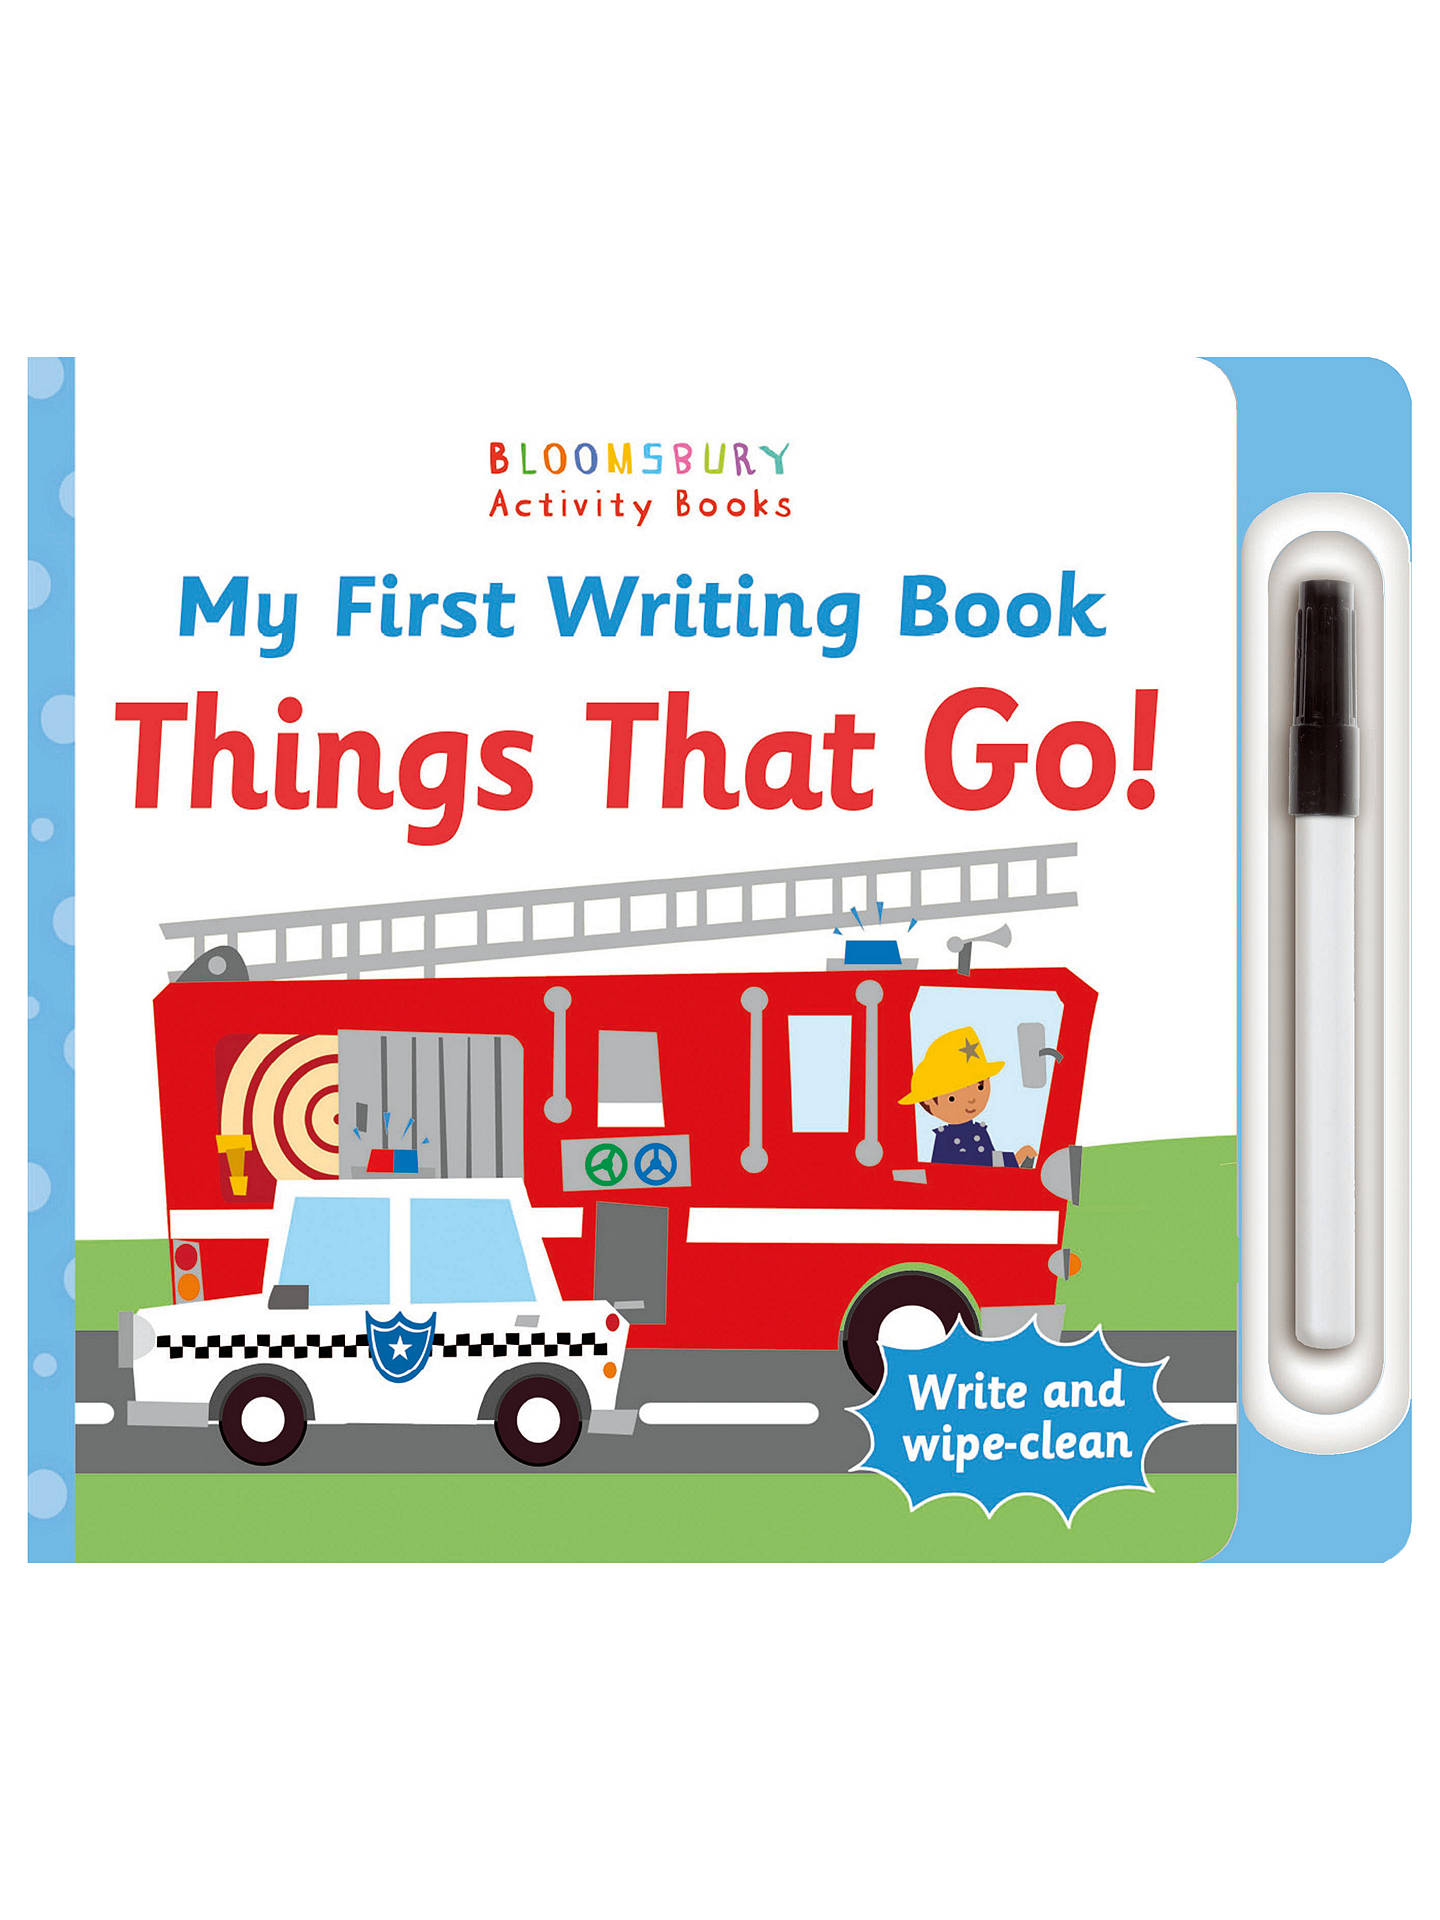 My First Writing Book Things That Go! Children's Book